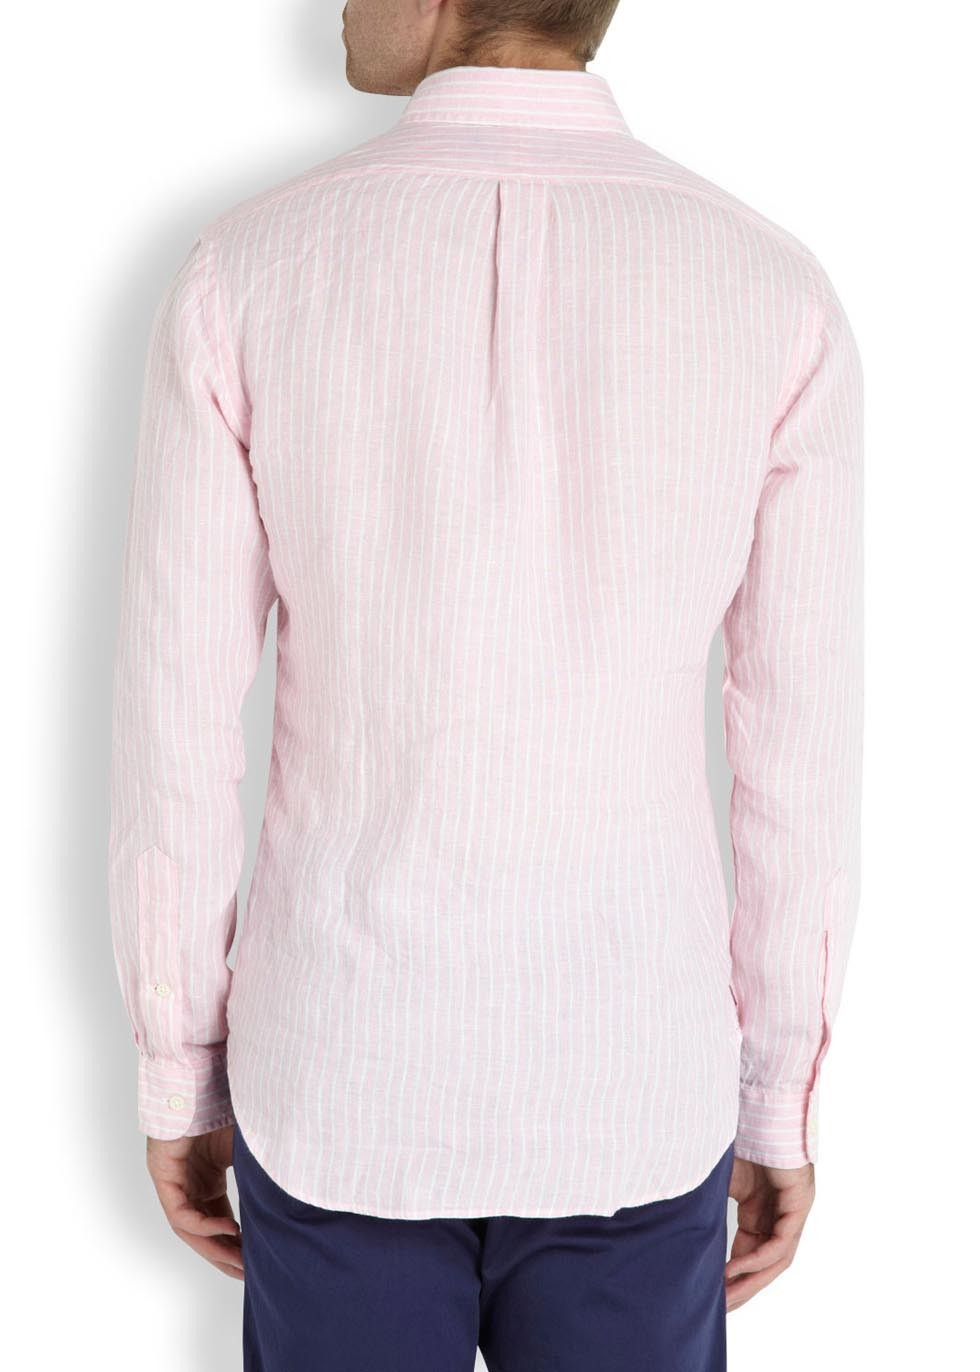 Polo ralph lauren pink and white striped linen shirt in for Pink and white ralph lauren shirt